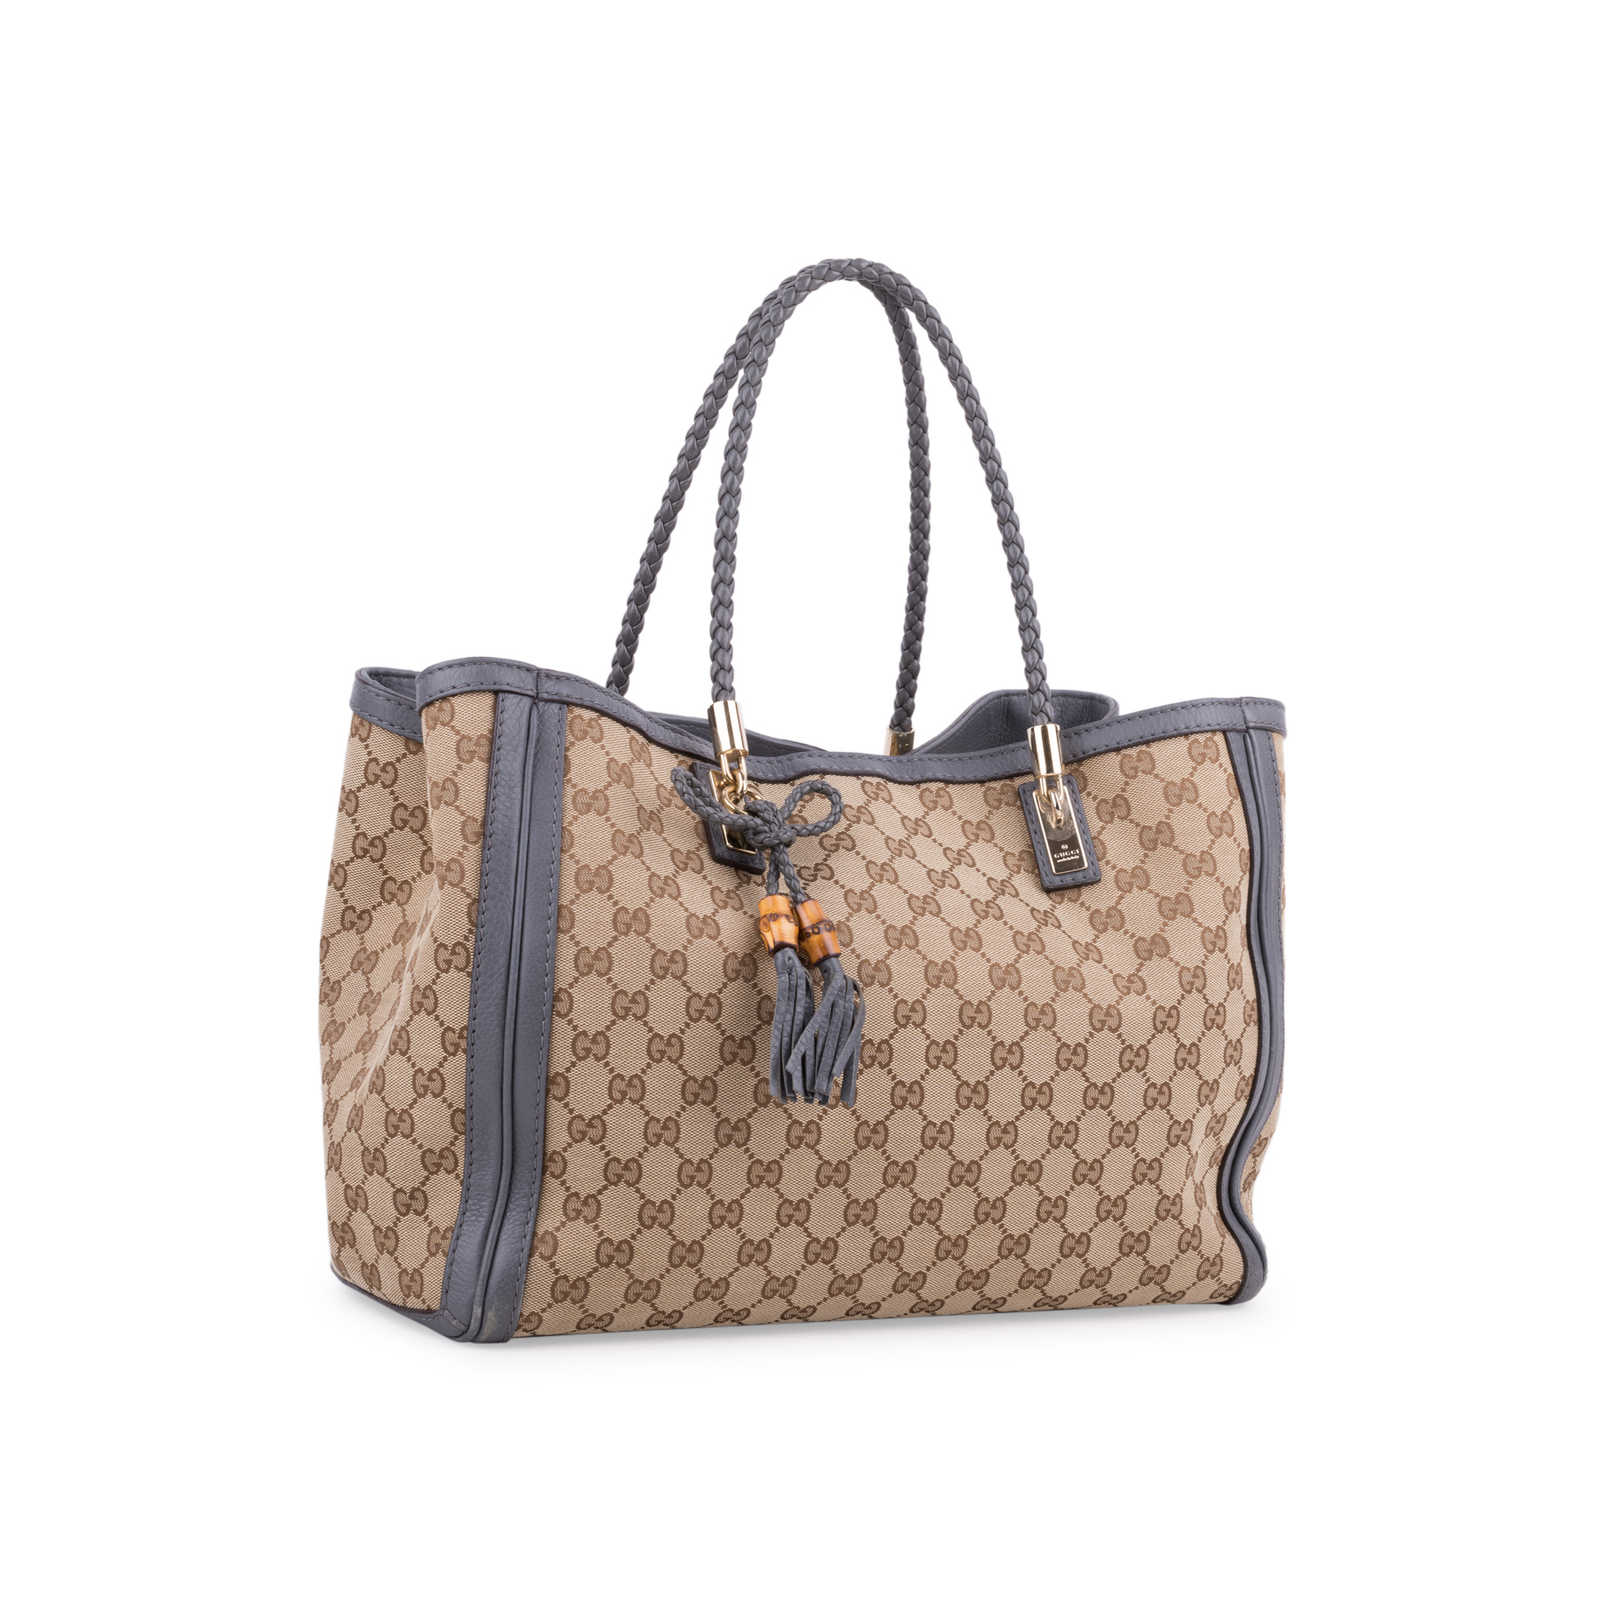 5b87e96d20 ... Authentic Second Hand Gucci Bella Canvas Tote (PSS-639-00002) -  Thumbnail ...